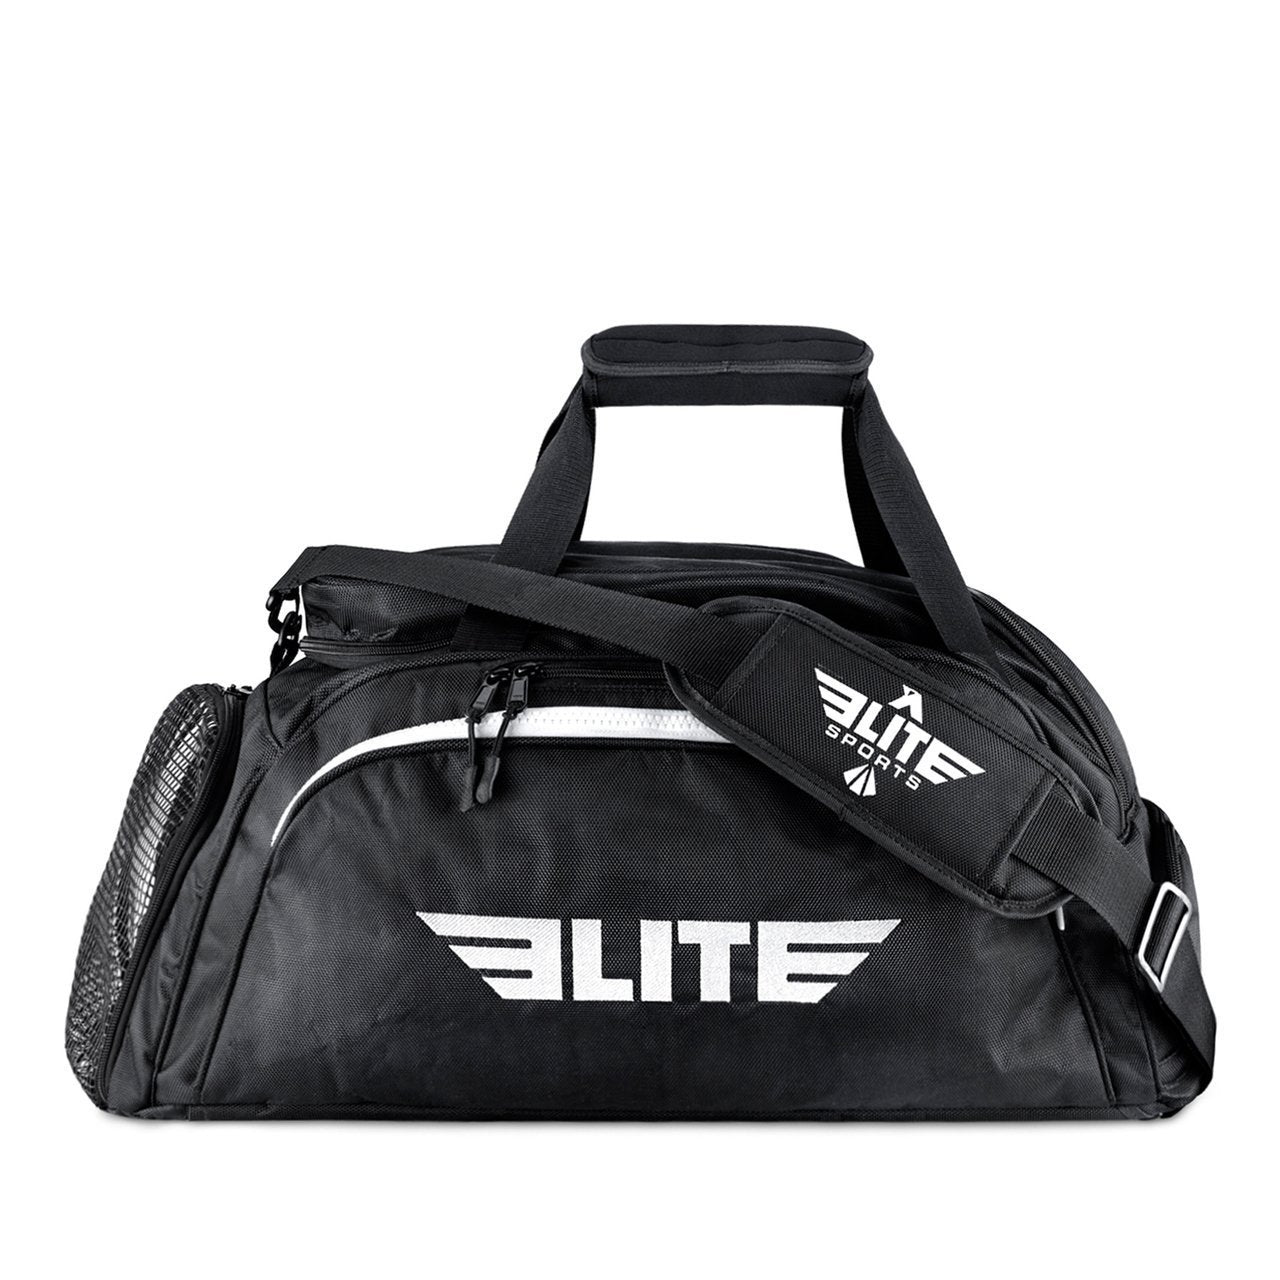 Elite Sports Warrior Series Black Medium Duffel Taekwondo Gear Gym Bag & Backpack